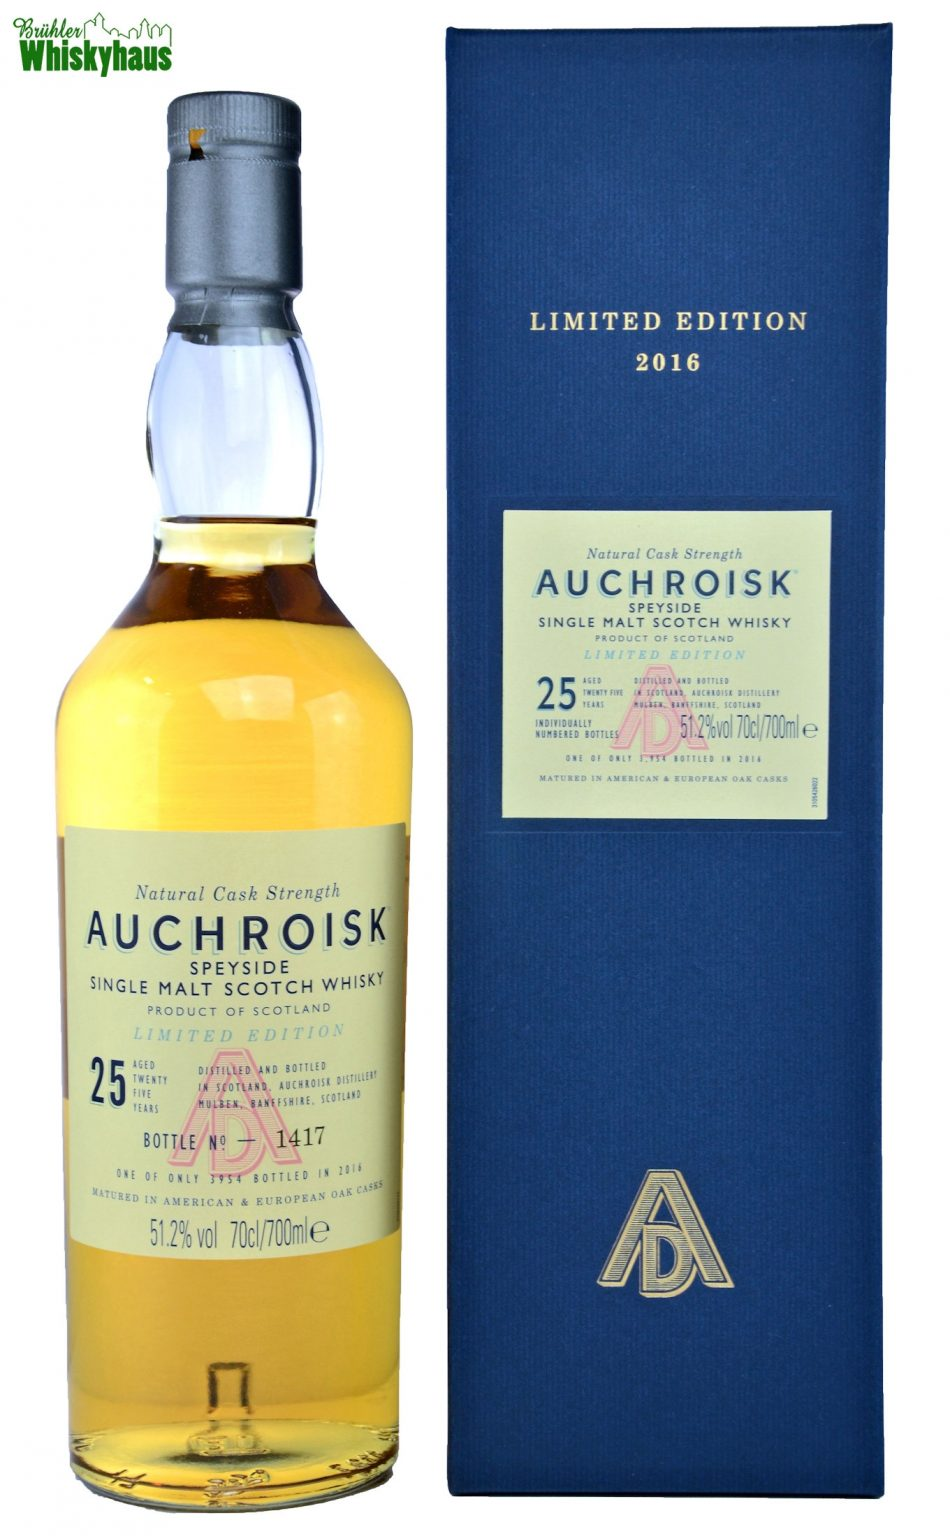 Auchroisk Vintage 1991 - 25 Jahre - Refill American & European Oak Cask - Single Malt Scotch Whisky